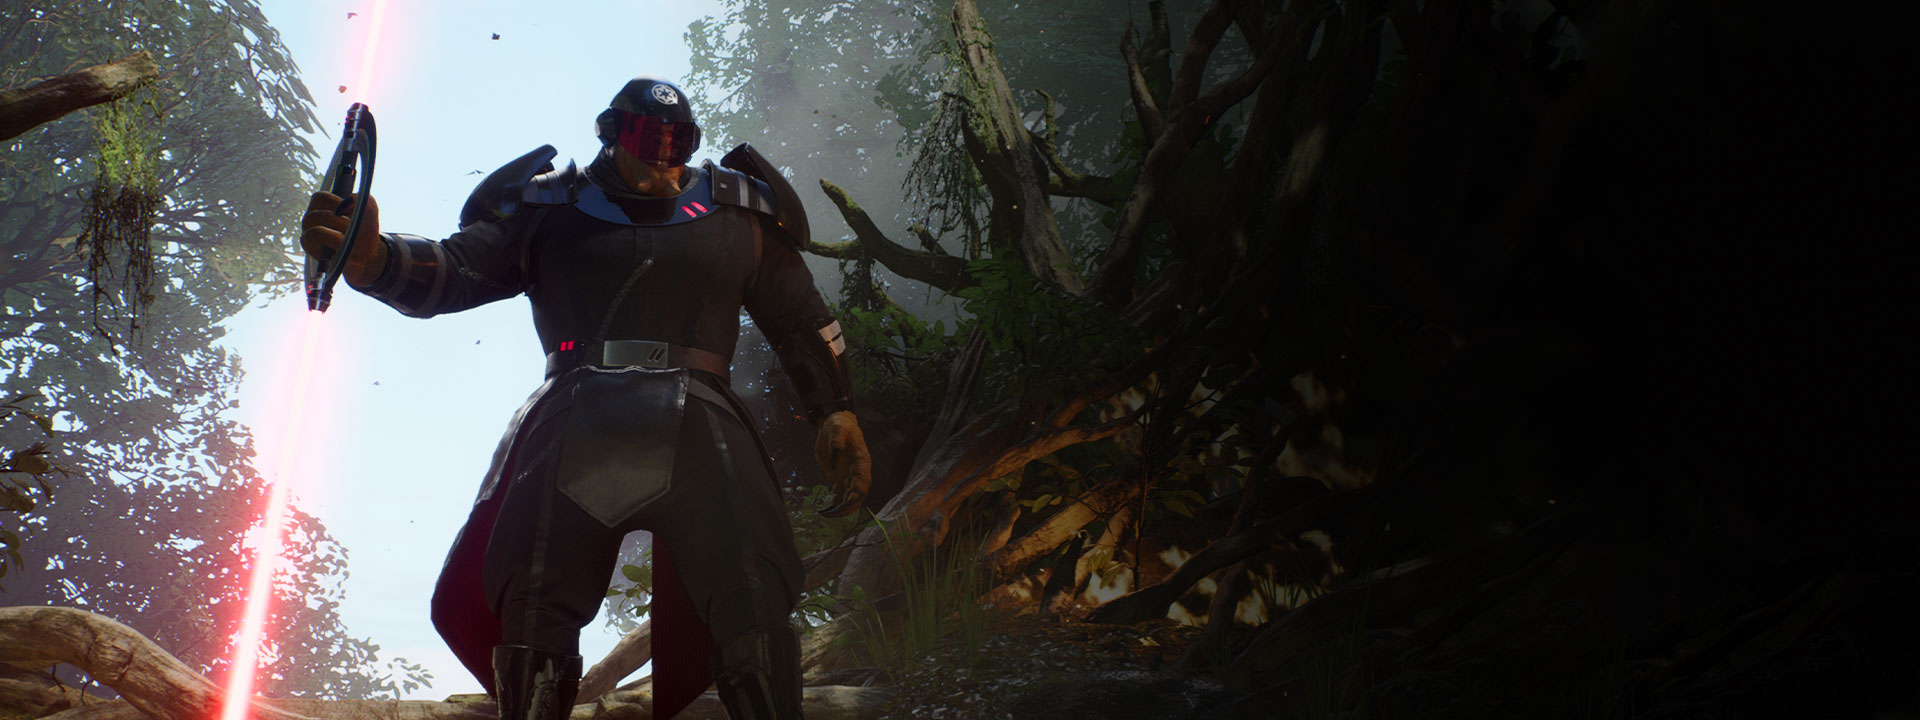 A large alien creature in Inquisitor armour holds a dual-sided lightsaber in a jungle